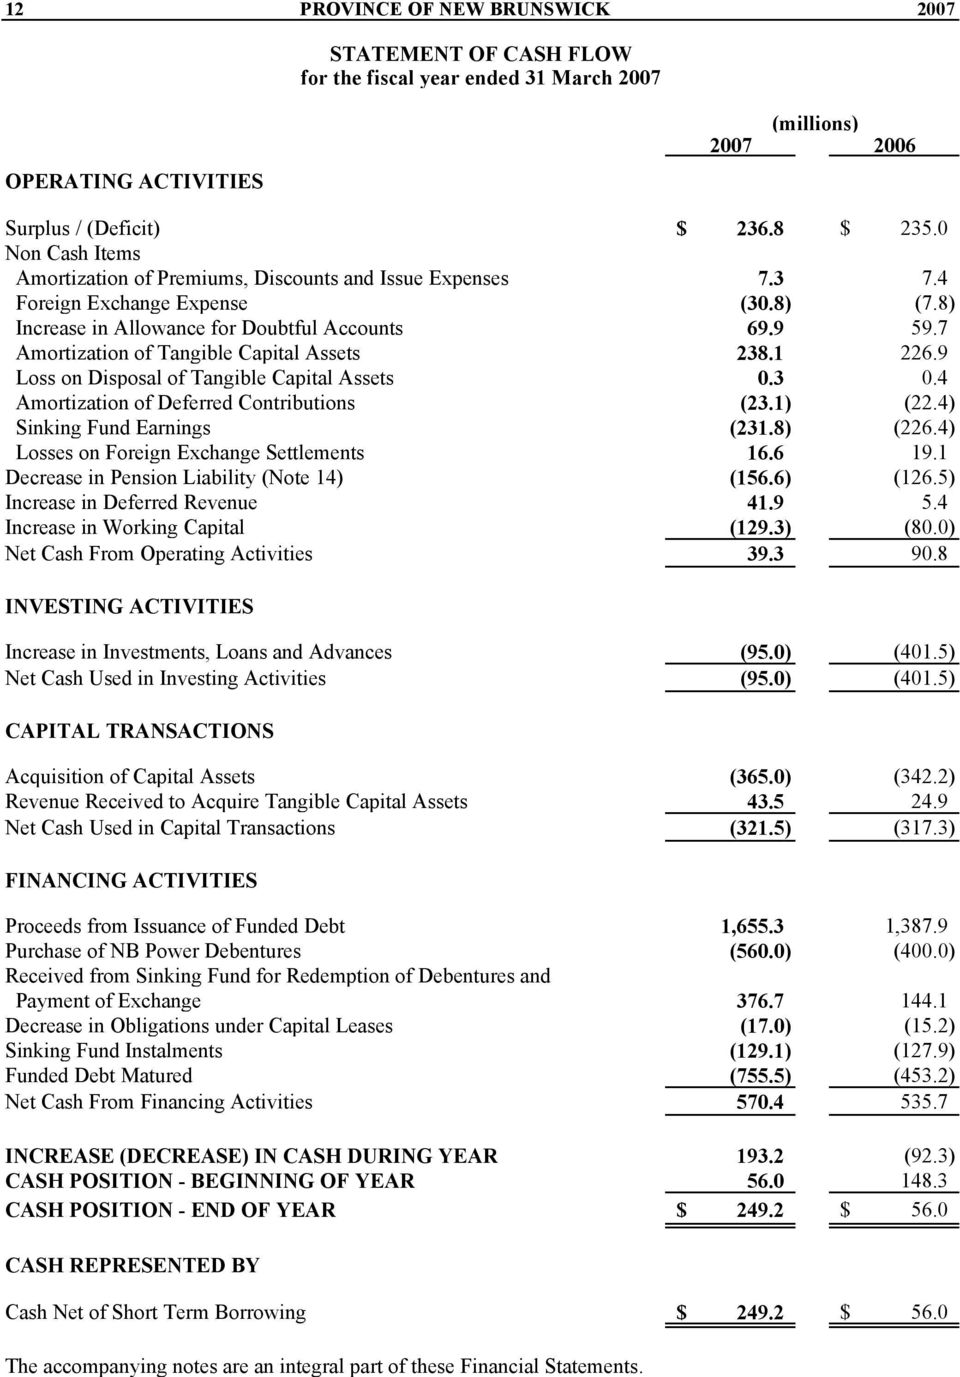 7 Amortization of Tangible Capital Assets 238.1 226.9 Loss on Disposal of Tangible Capital Assets 0.3 0.4 Amortization of Deferred Contributions (23.1) (22.4) Sinking Fund Earnings (231.8) (226.